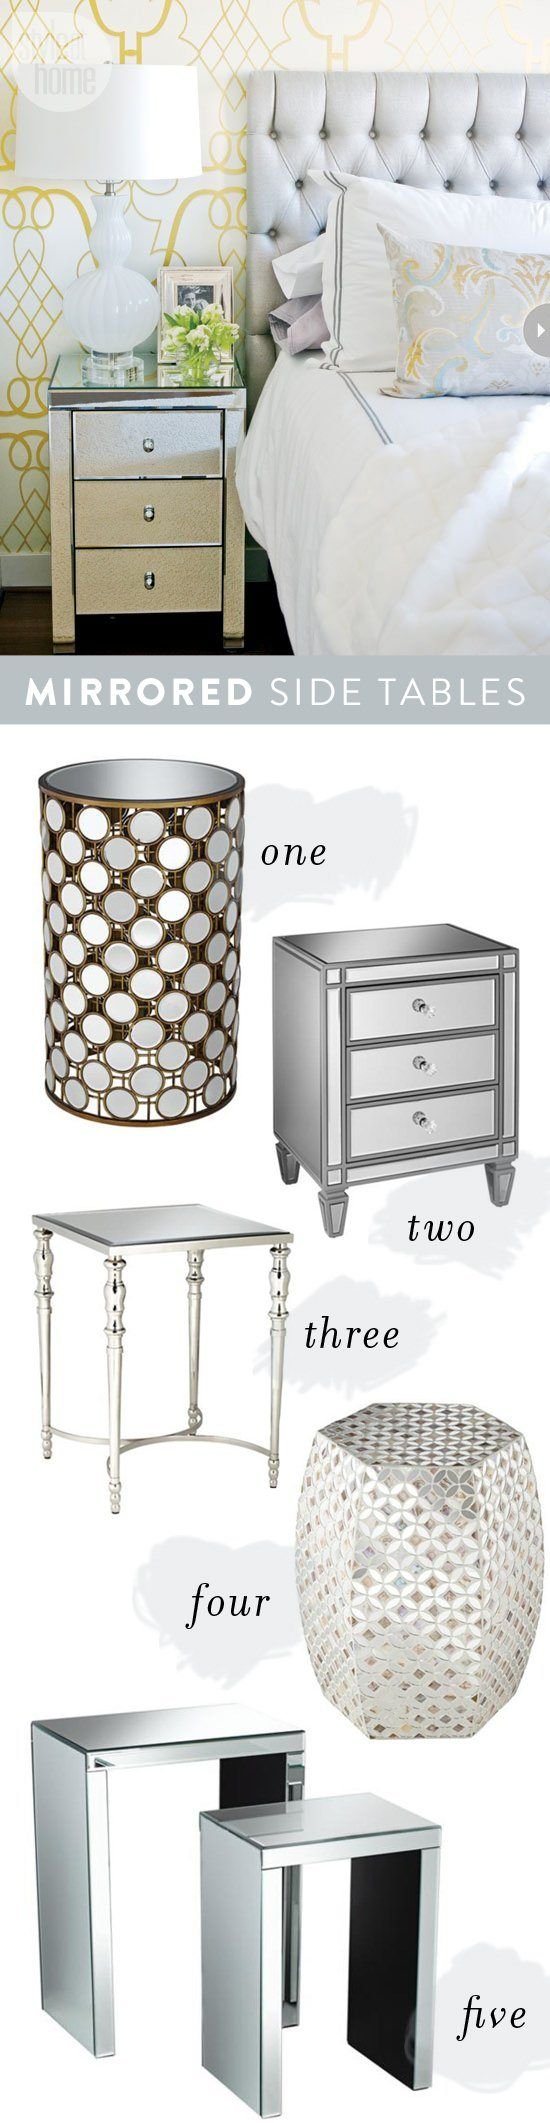 Charming and Glamorous Mirrored Accent Tables for the bedroom